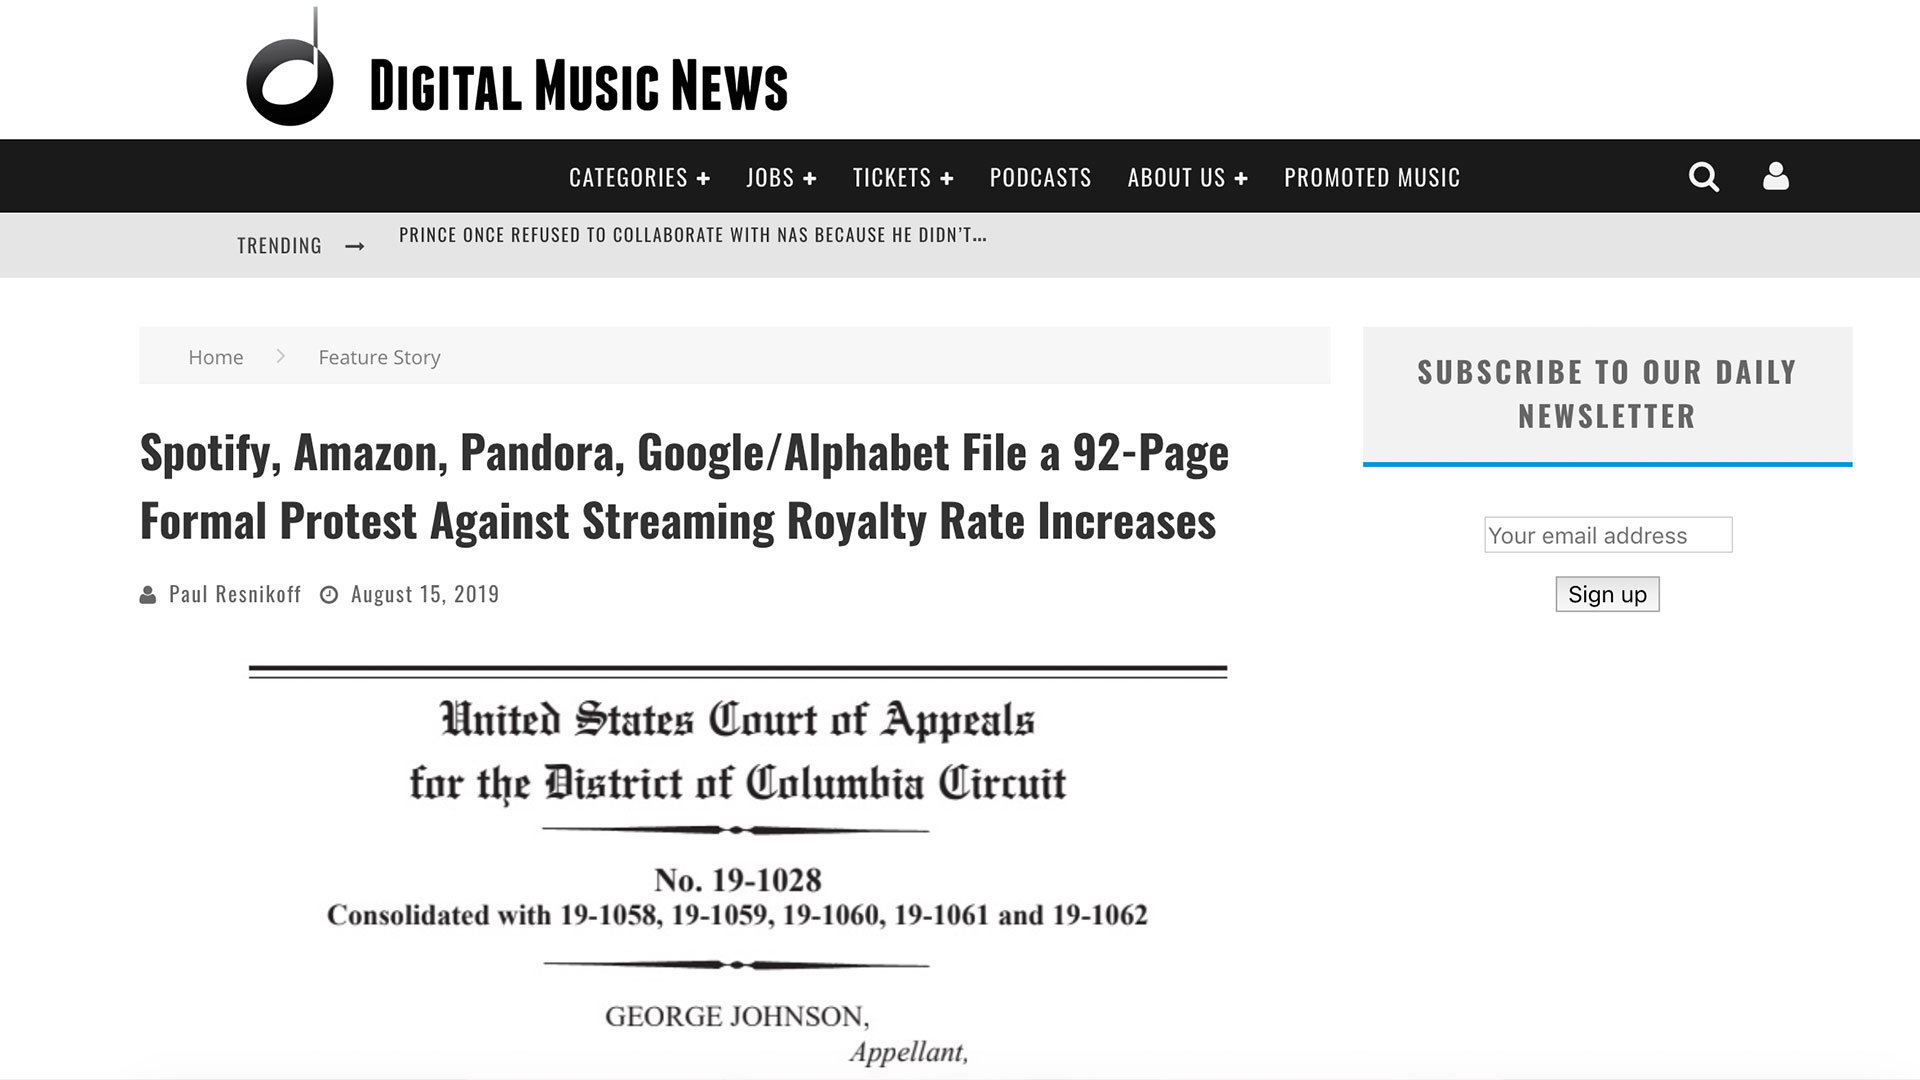 Fairness Rocks News Spotify, Amazon, Pandora, Google/Alphabet File a 92-Page Formal Protest Against Streaming Royalty Rate Increases